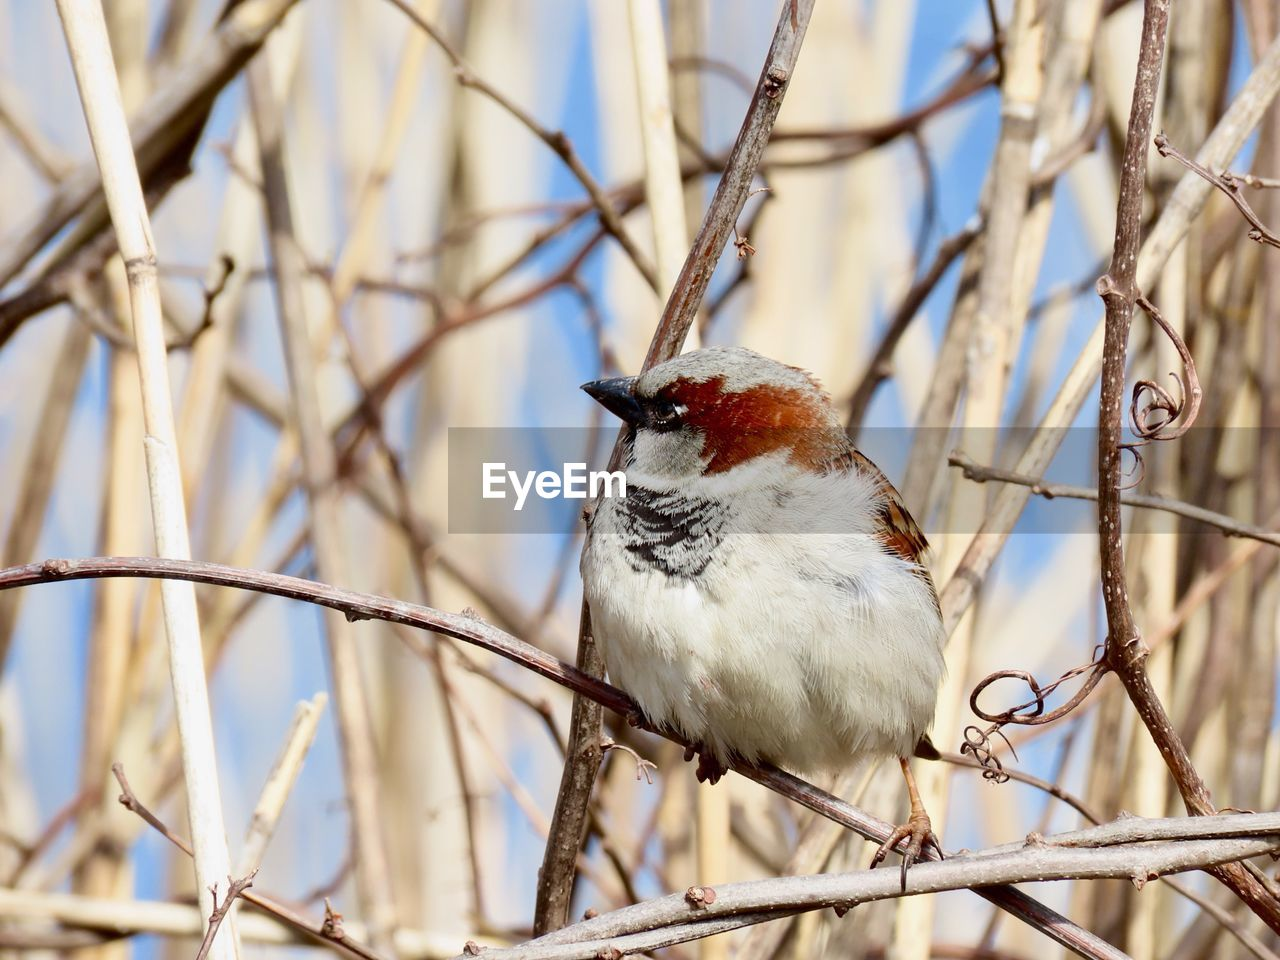 bird, perching, vertebrate, animal, animal themes, one animal, branch, animal wildlife, animals in the wild, focus on foreground, tree, no people, bare tree, day, plant, low angle view, close-up, outdoors, nature, selective focus